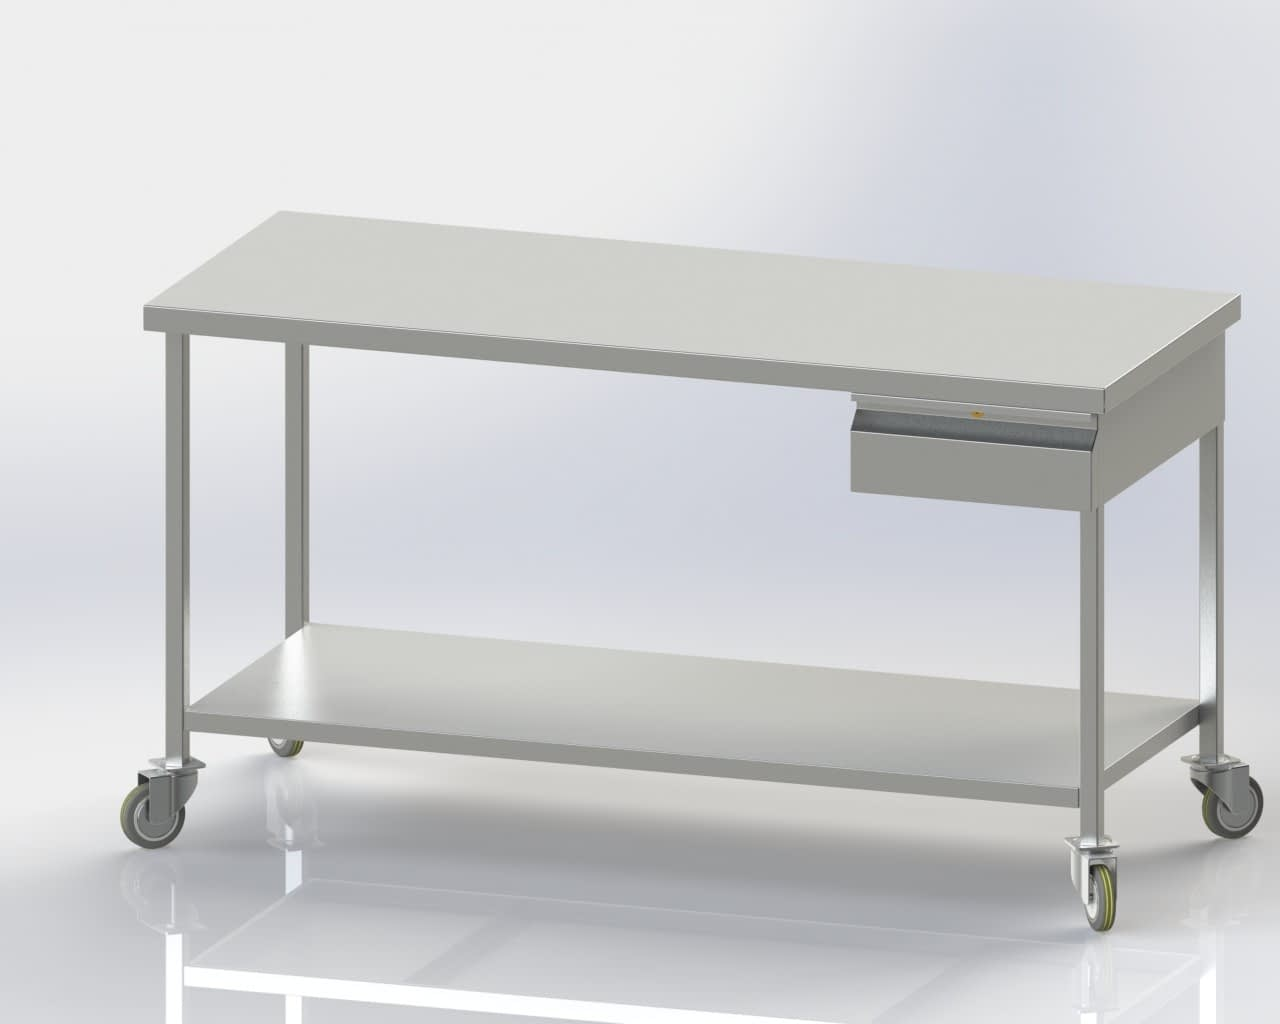 Mobile Table with Single Drawer